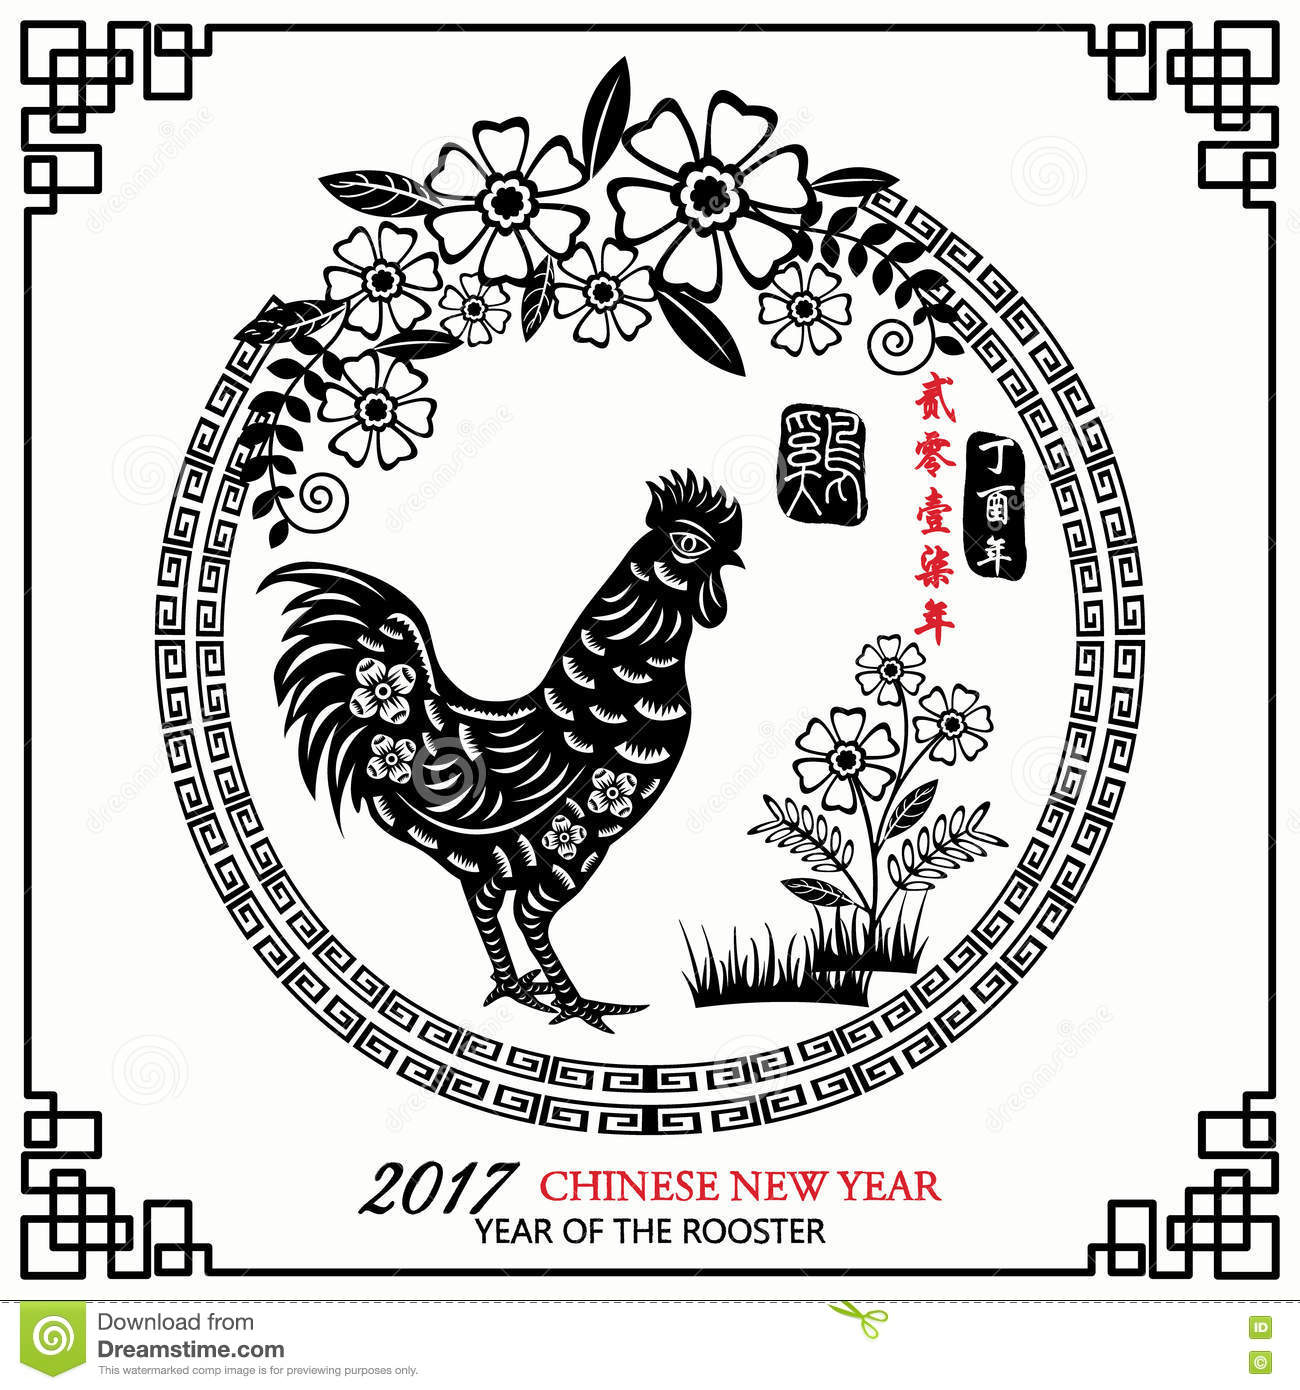 Chinese New Year Of The Rooster.Chinese New Year 2017,Chinese ...